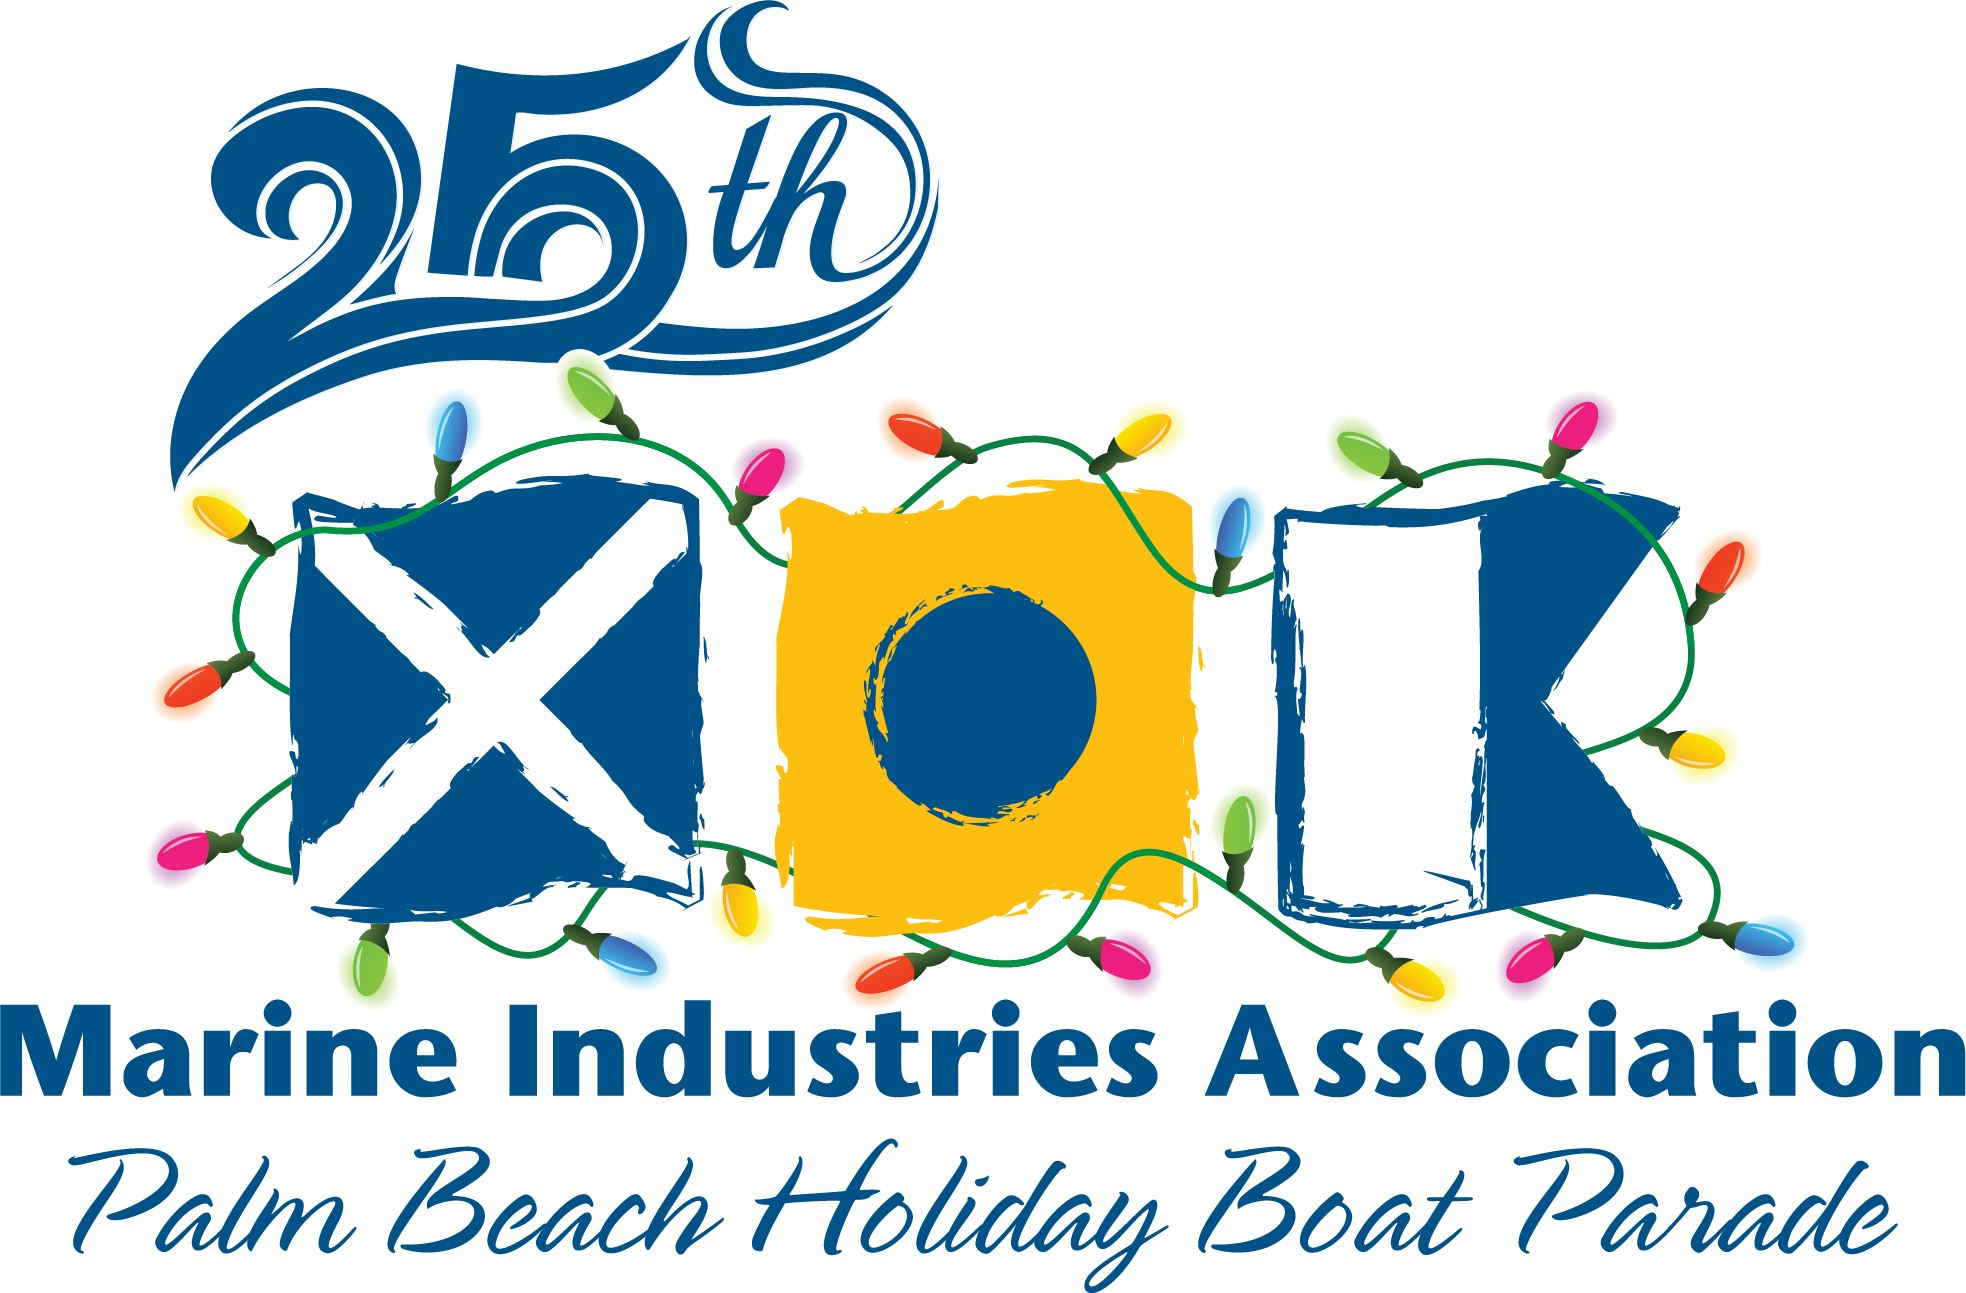 25th Annual Marine Industries Association Holiday Boat Parade Logo Opens in new window